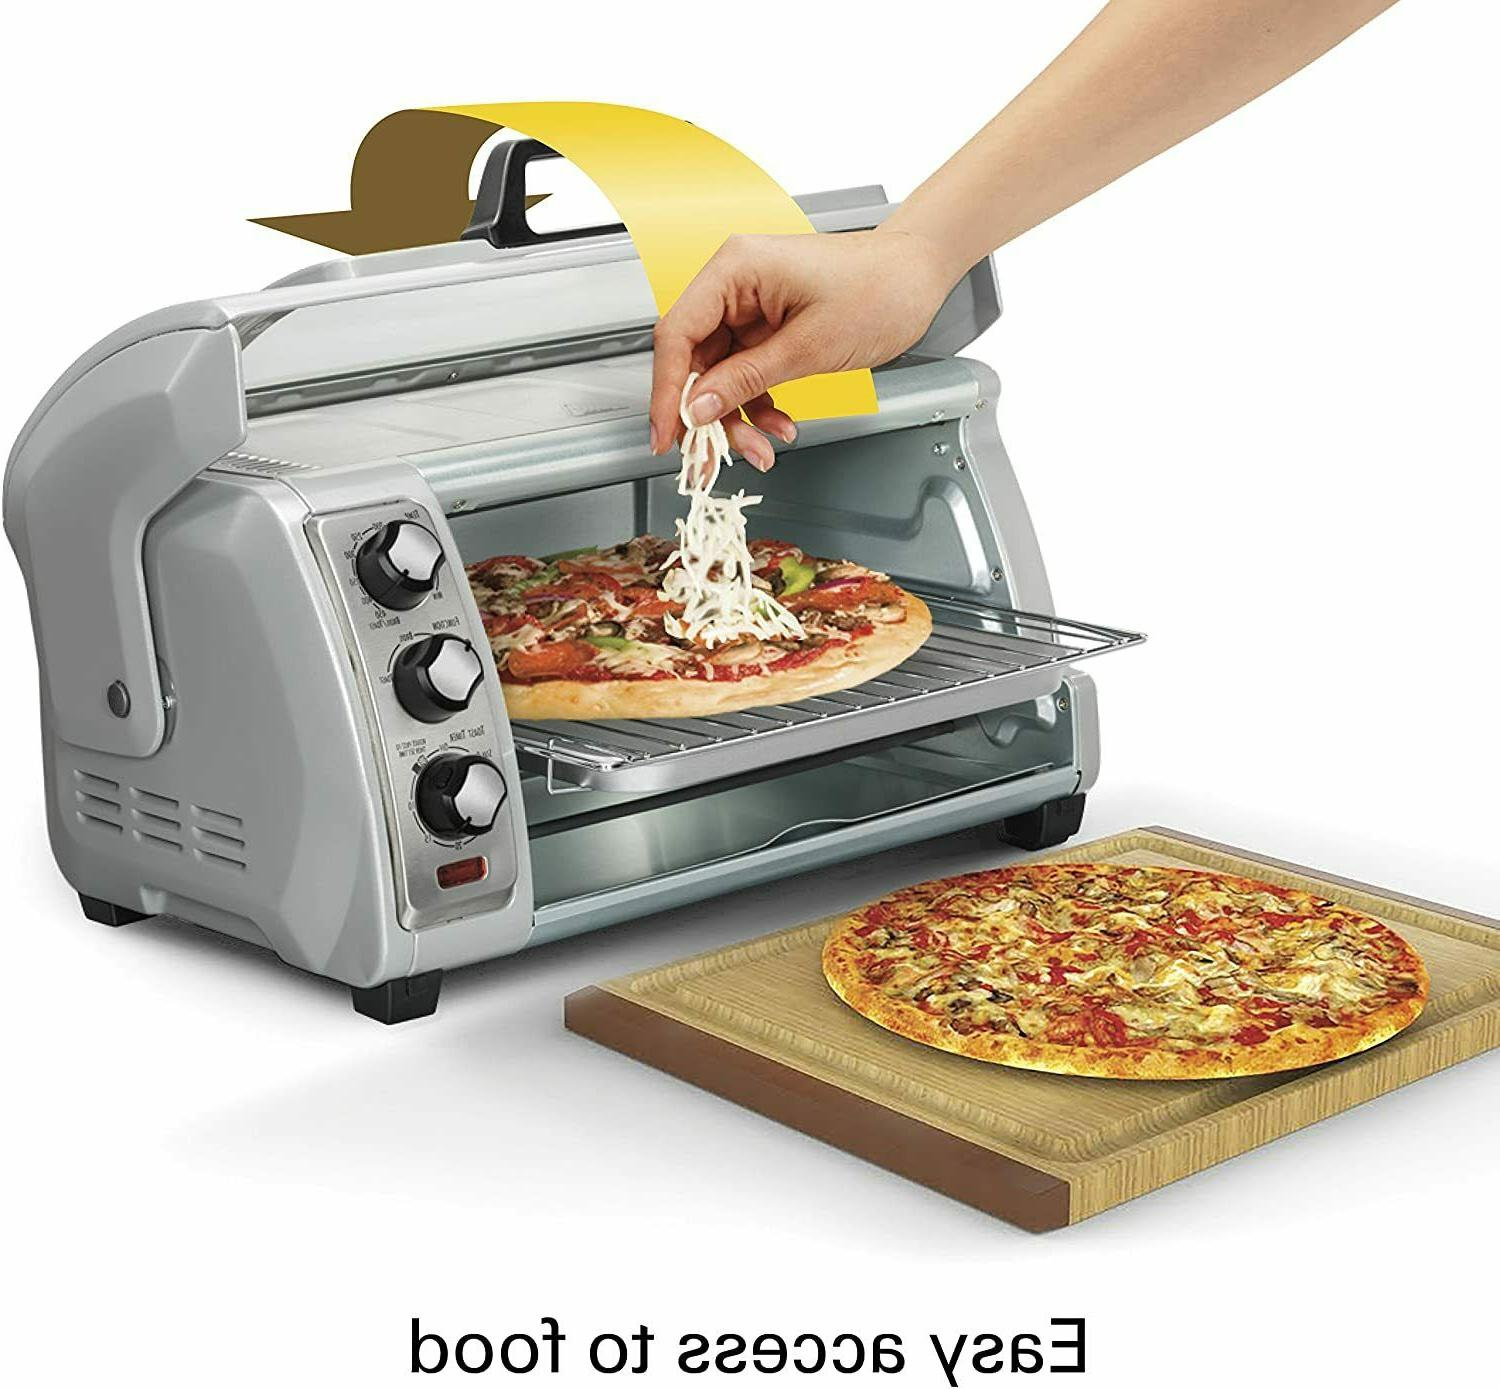 toaster oven countertop kitchen pizza baking cook